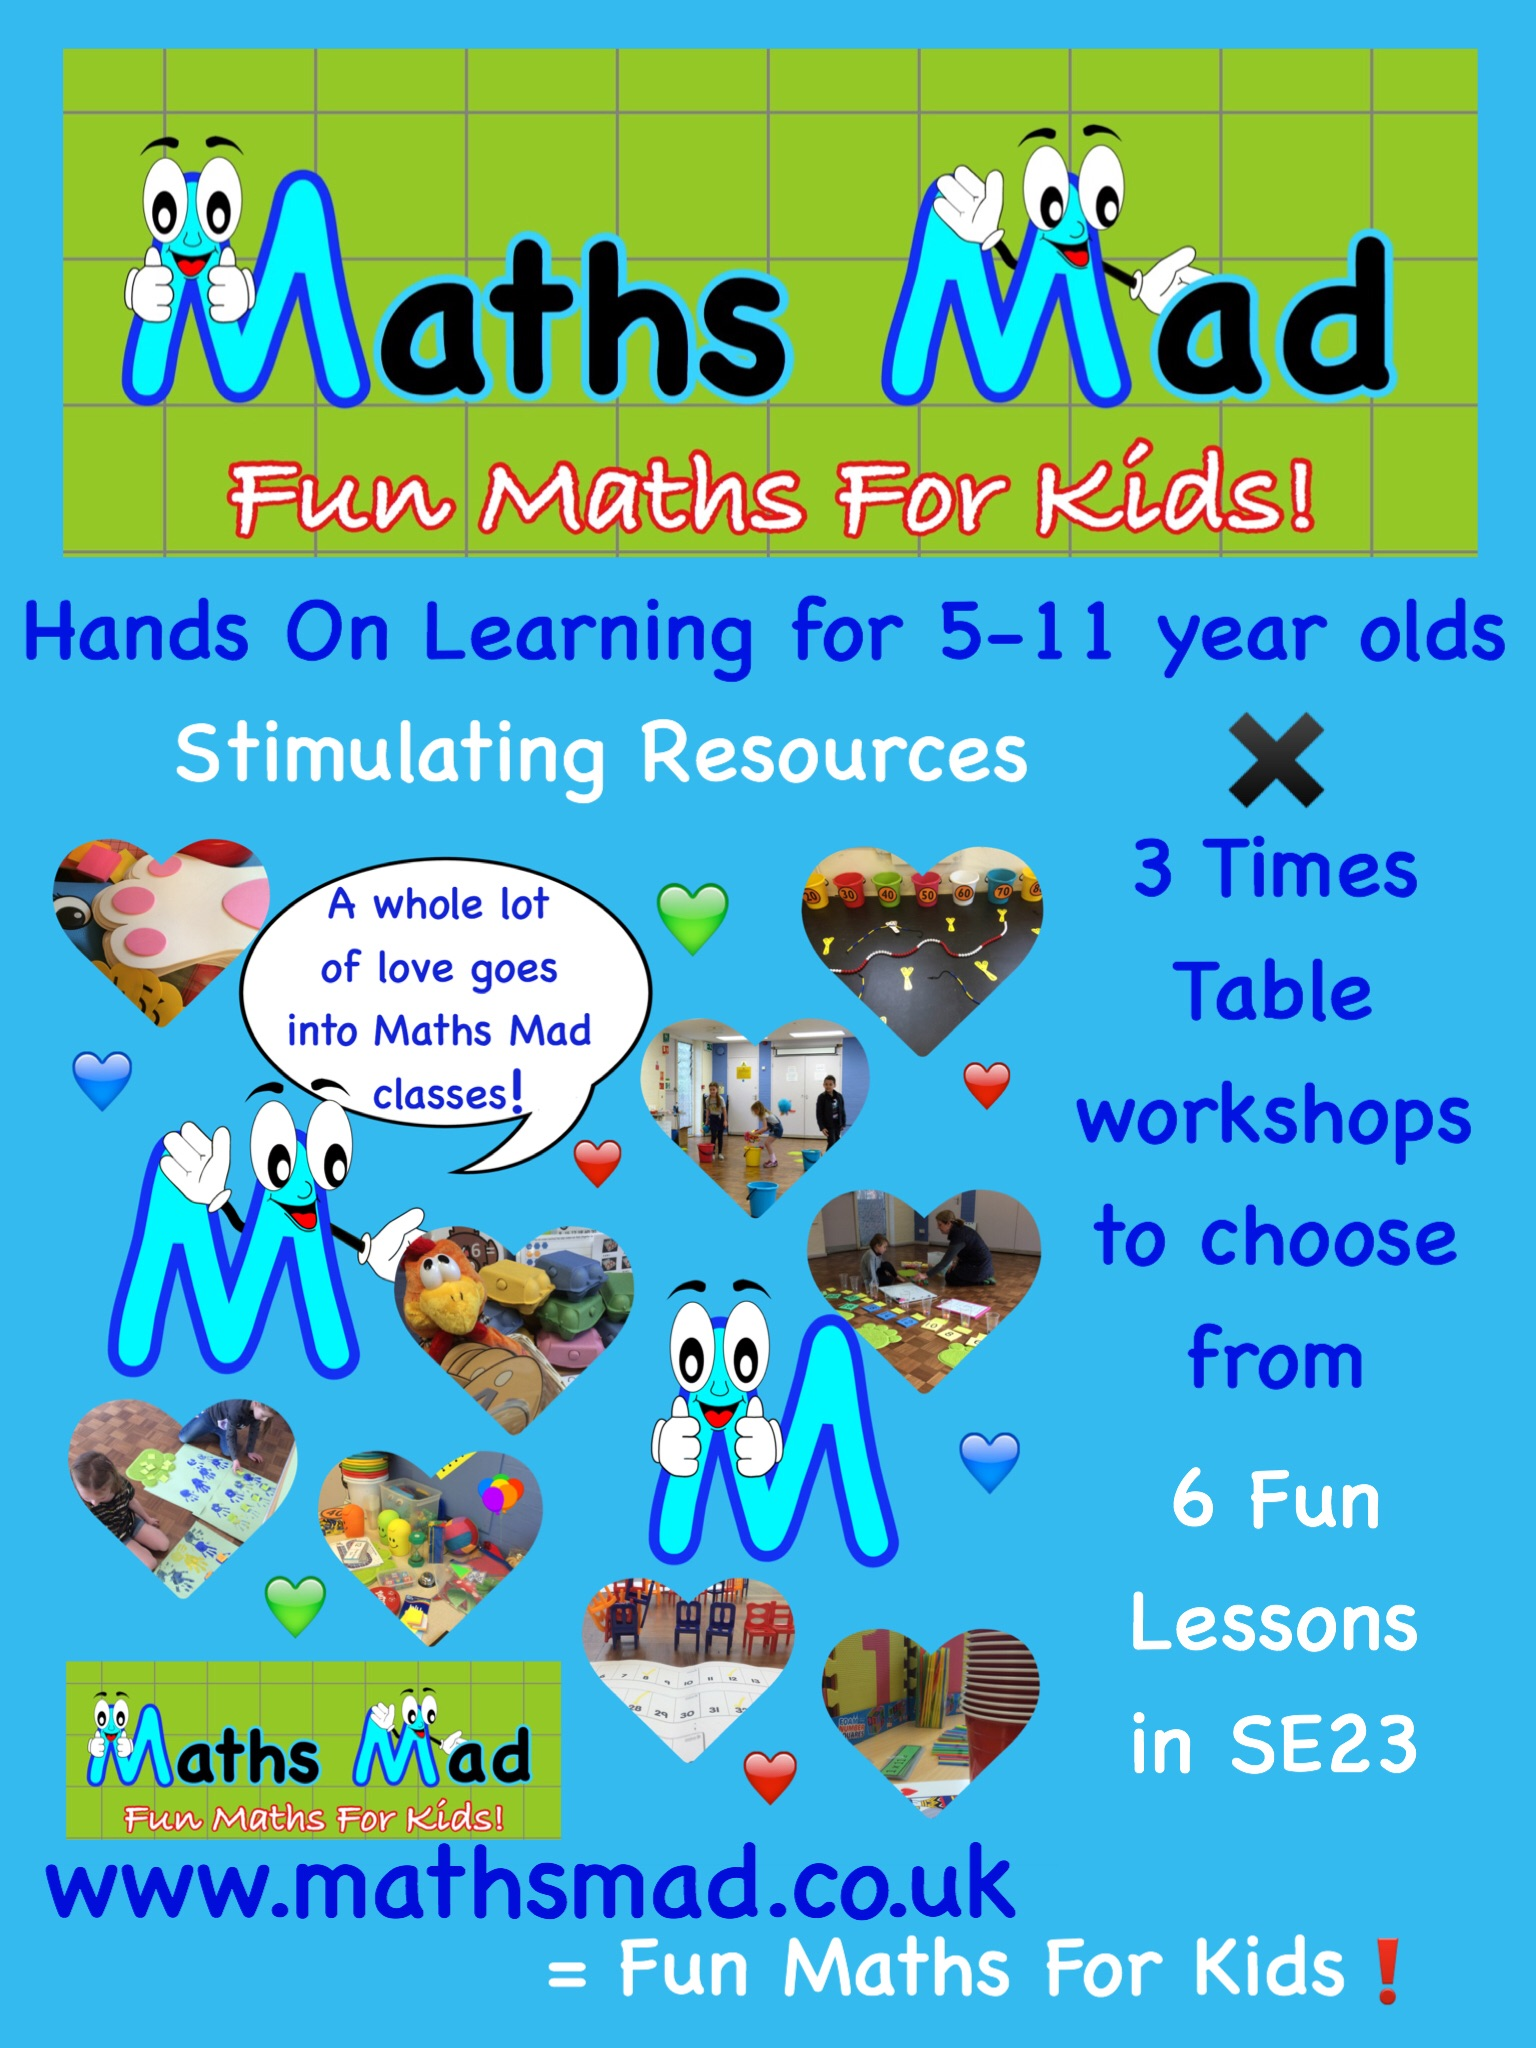 Maths Mad Times Table Classes 4 Kids! - Local Services - SE23 Forum ...